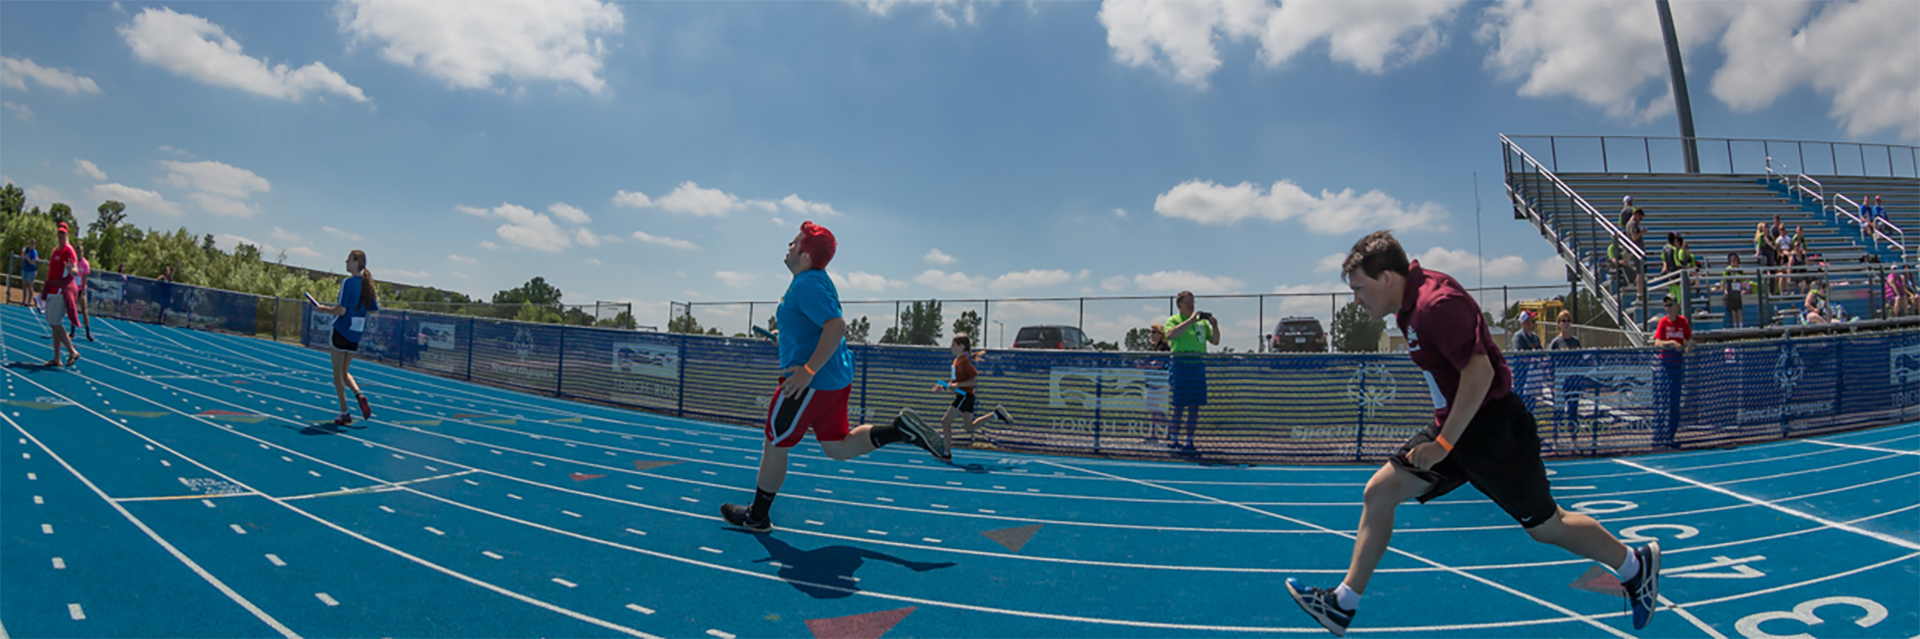 Special Olympics Minnesota track athletes running race